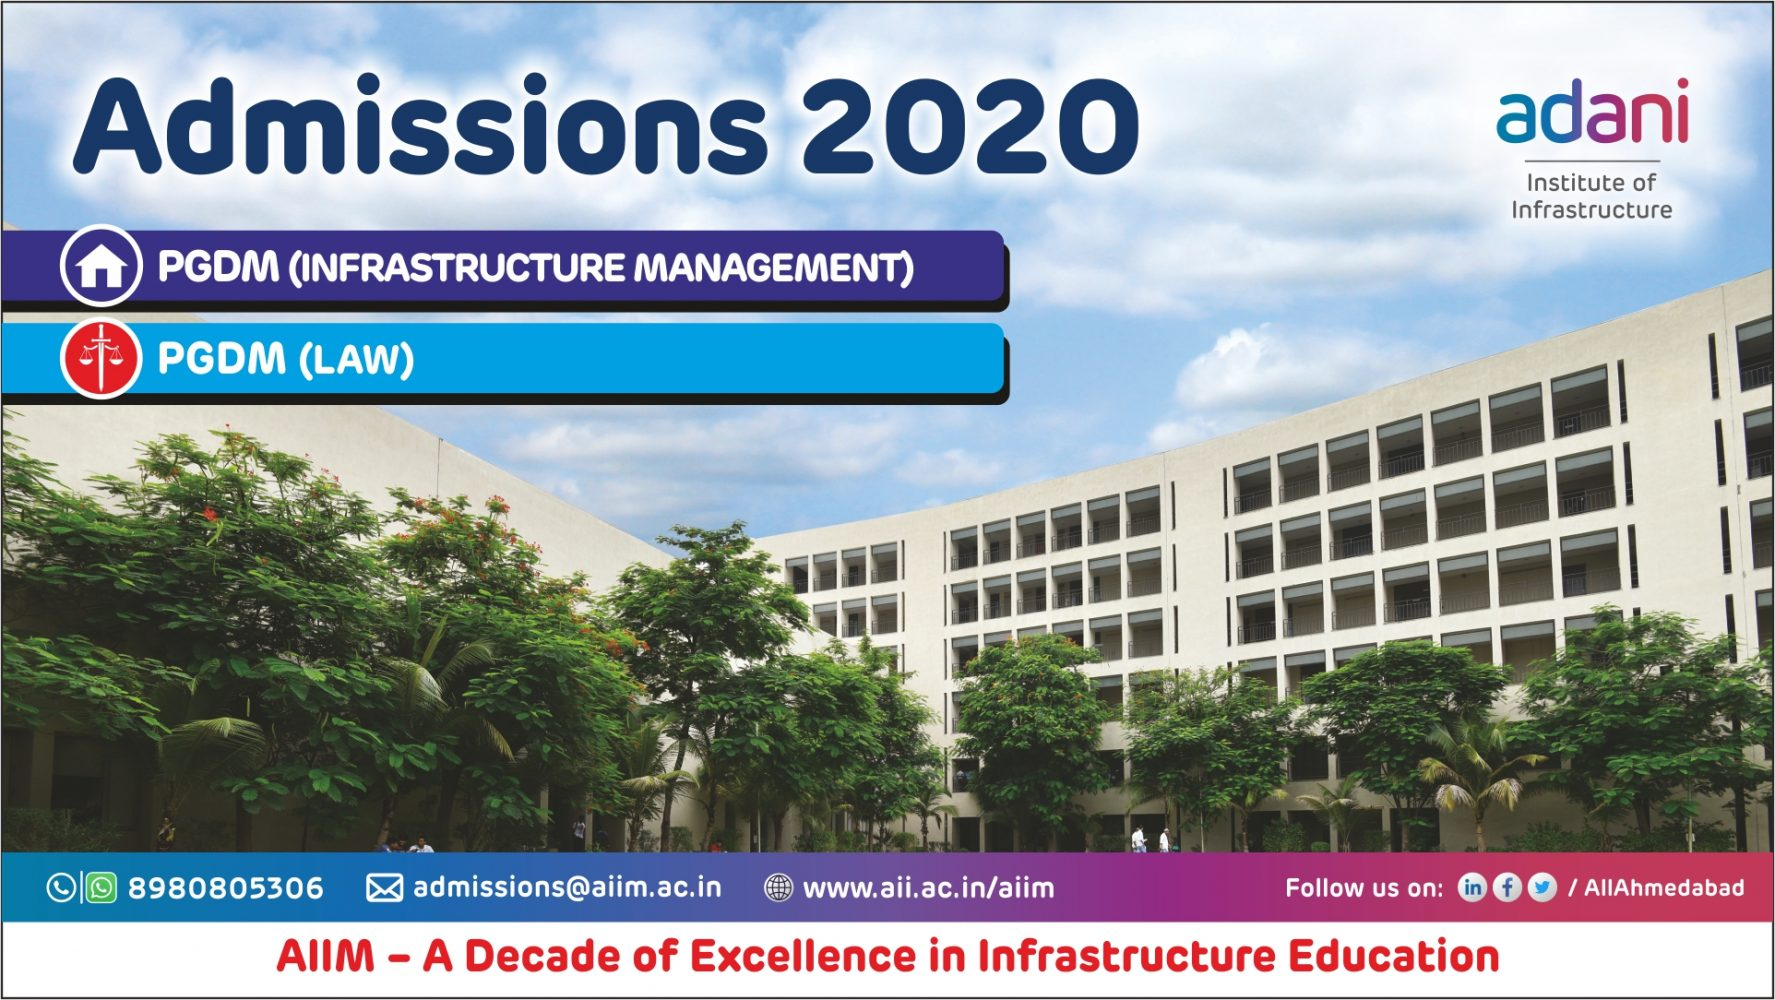 Adani Institute of Infrastructure Management